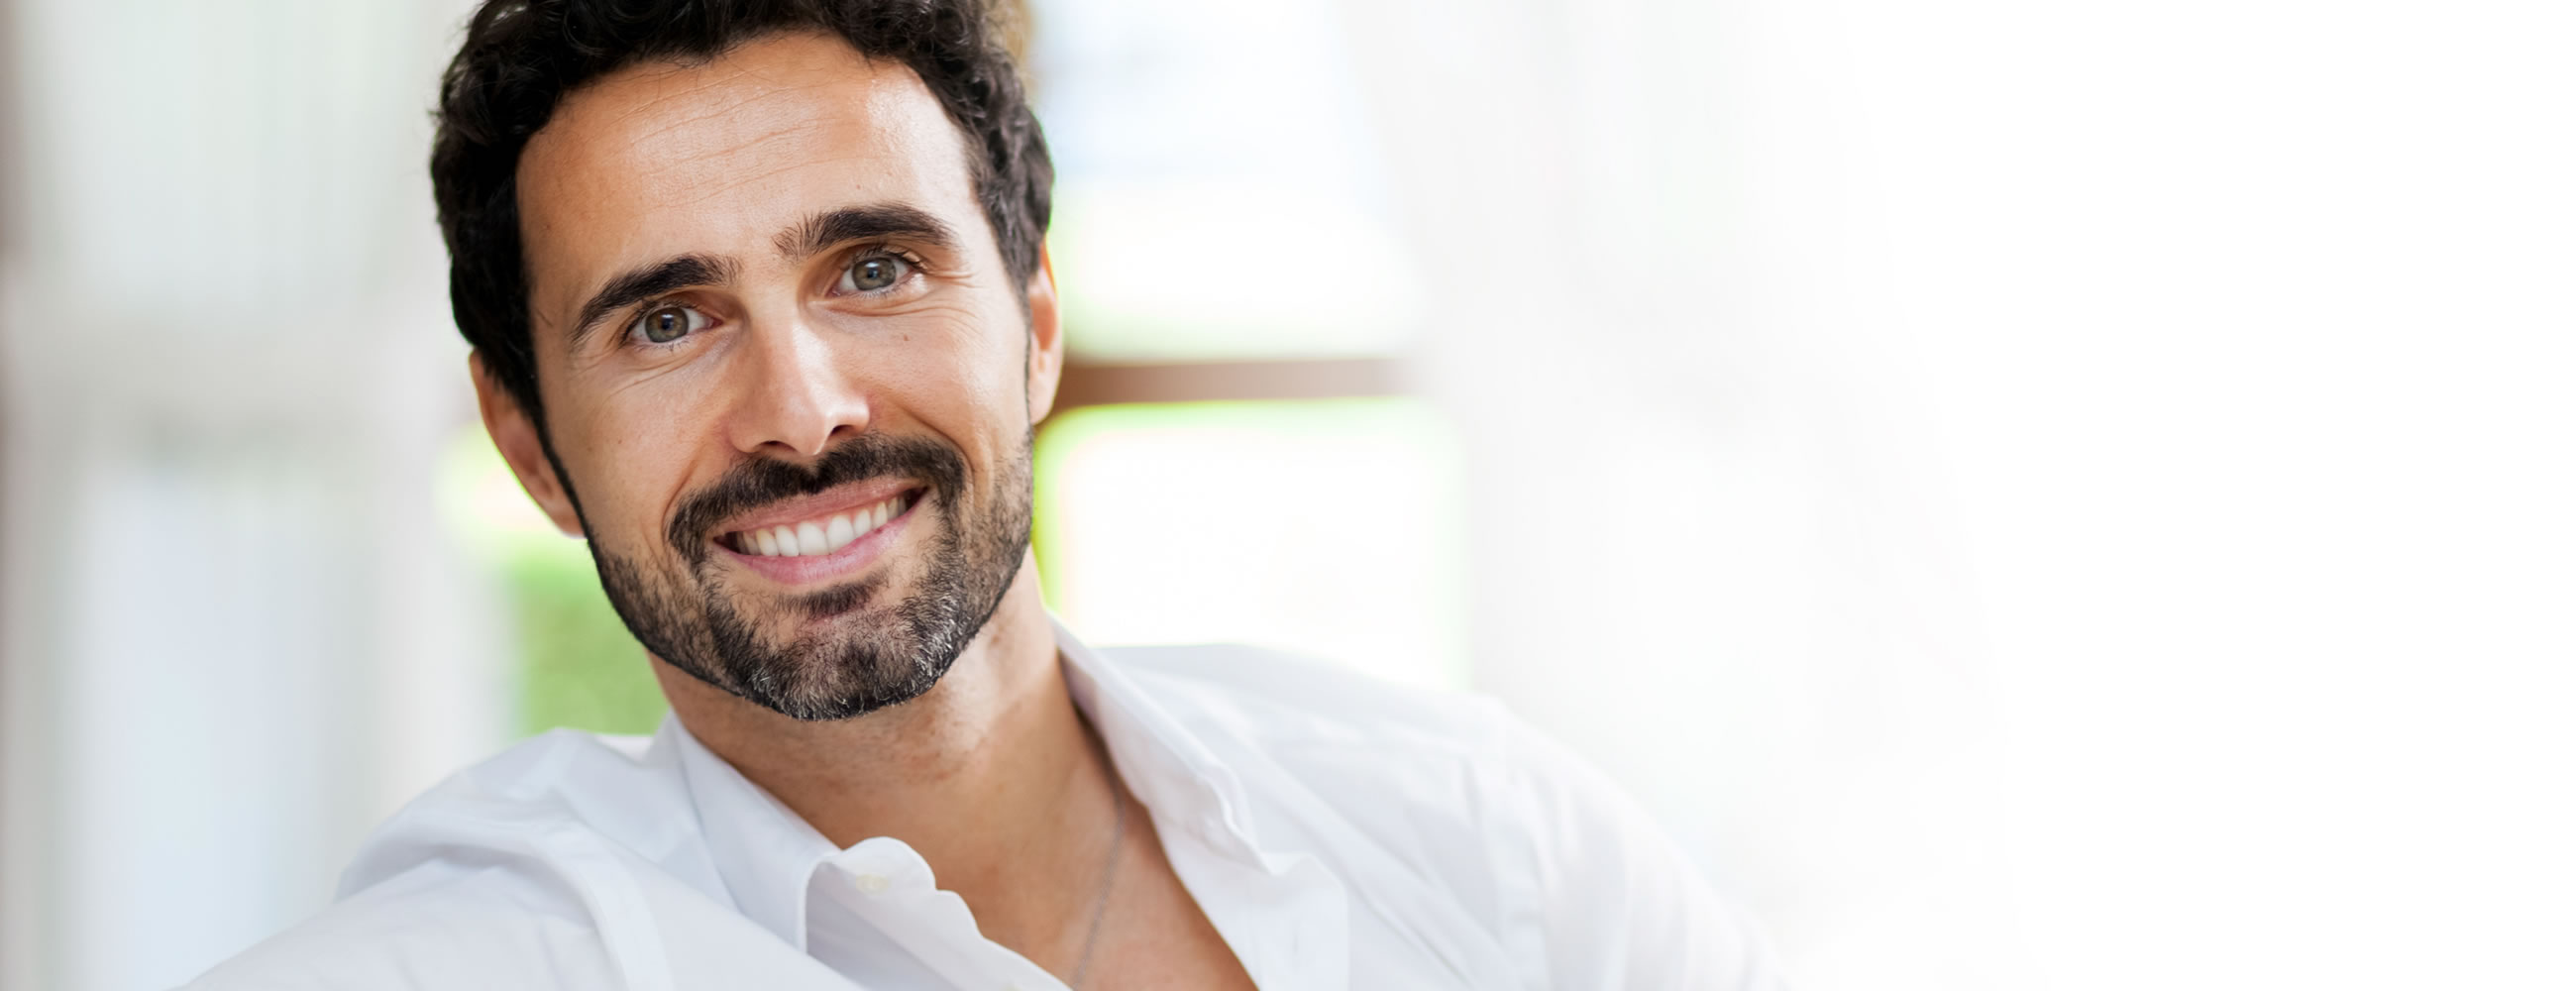 Gum Disease Dental Treatment in Stockport